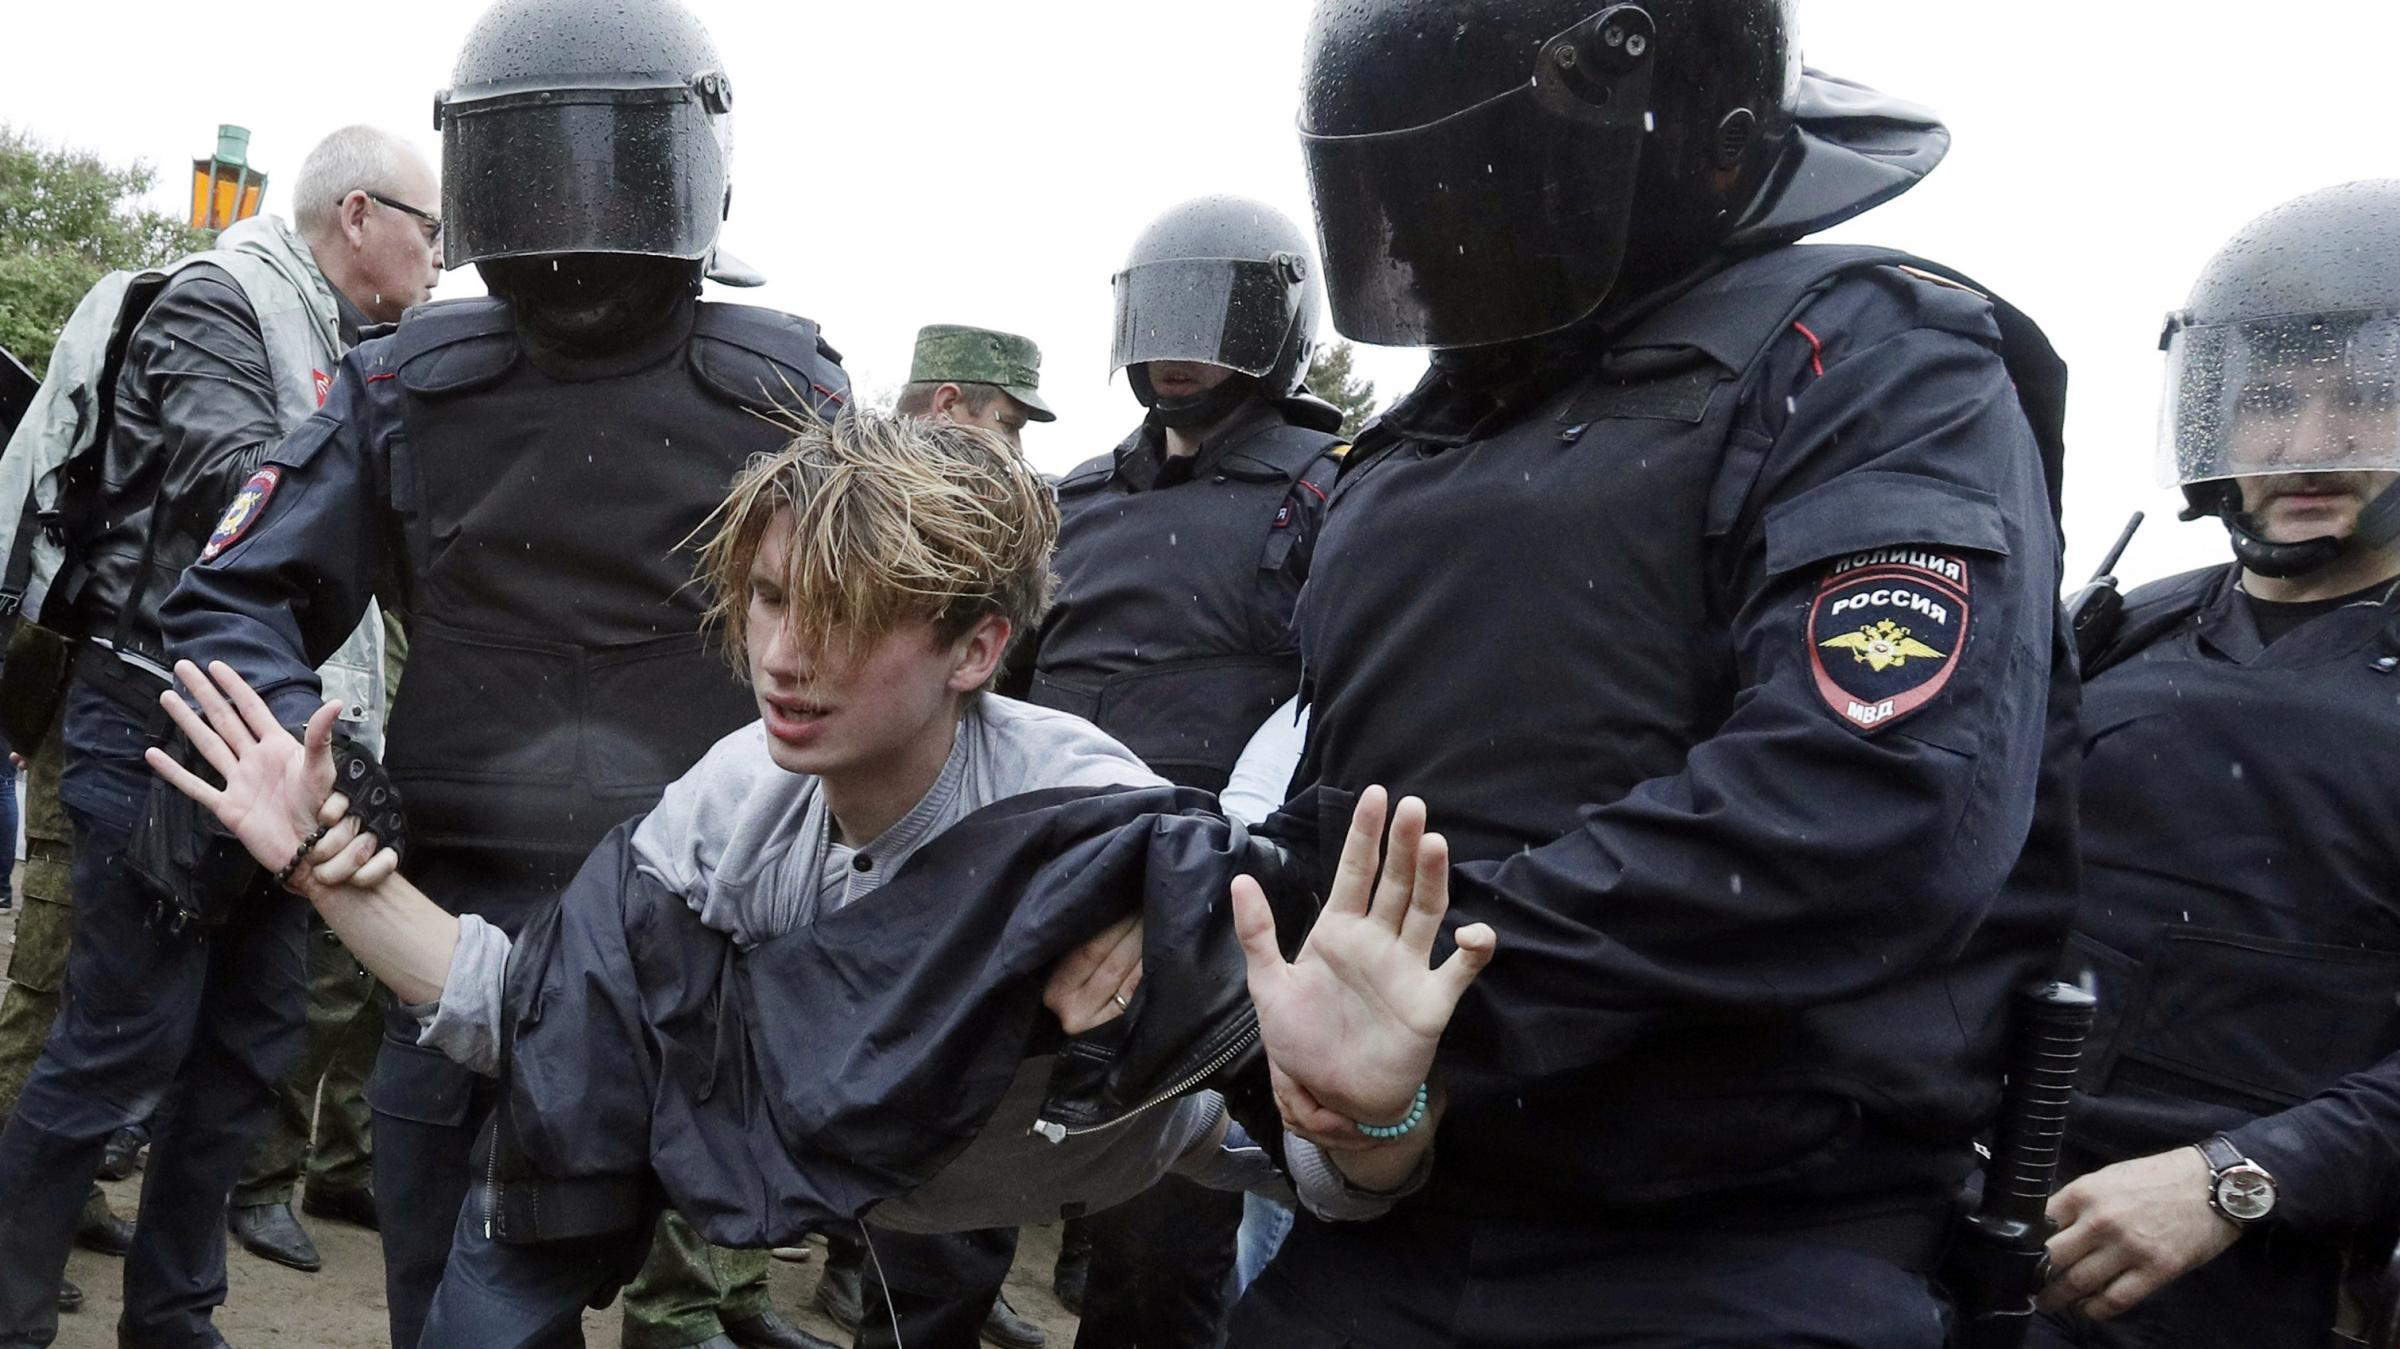 Hundreds of demonstrators arrested in Russia